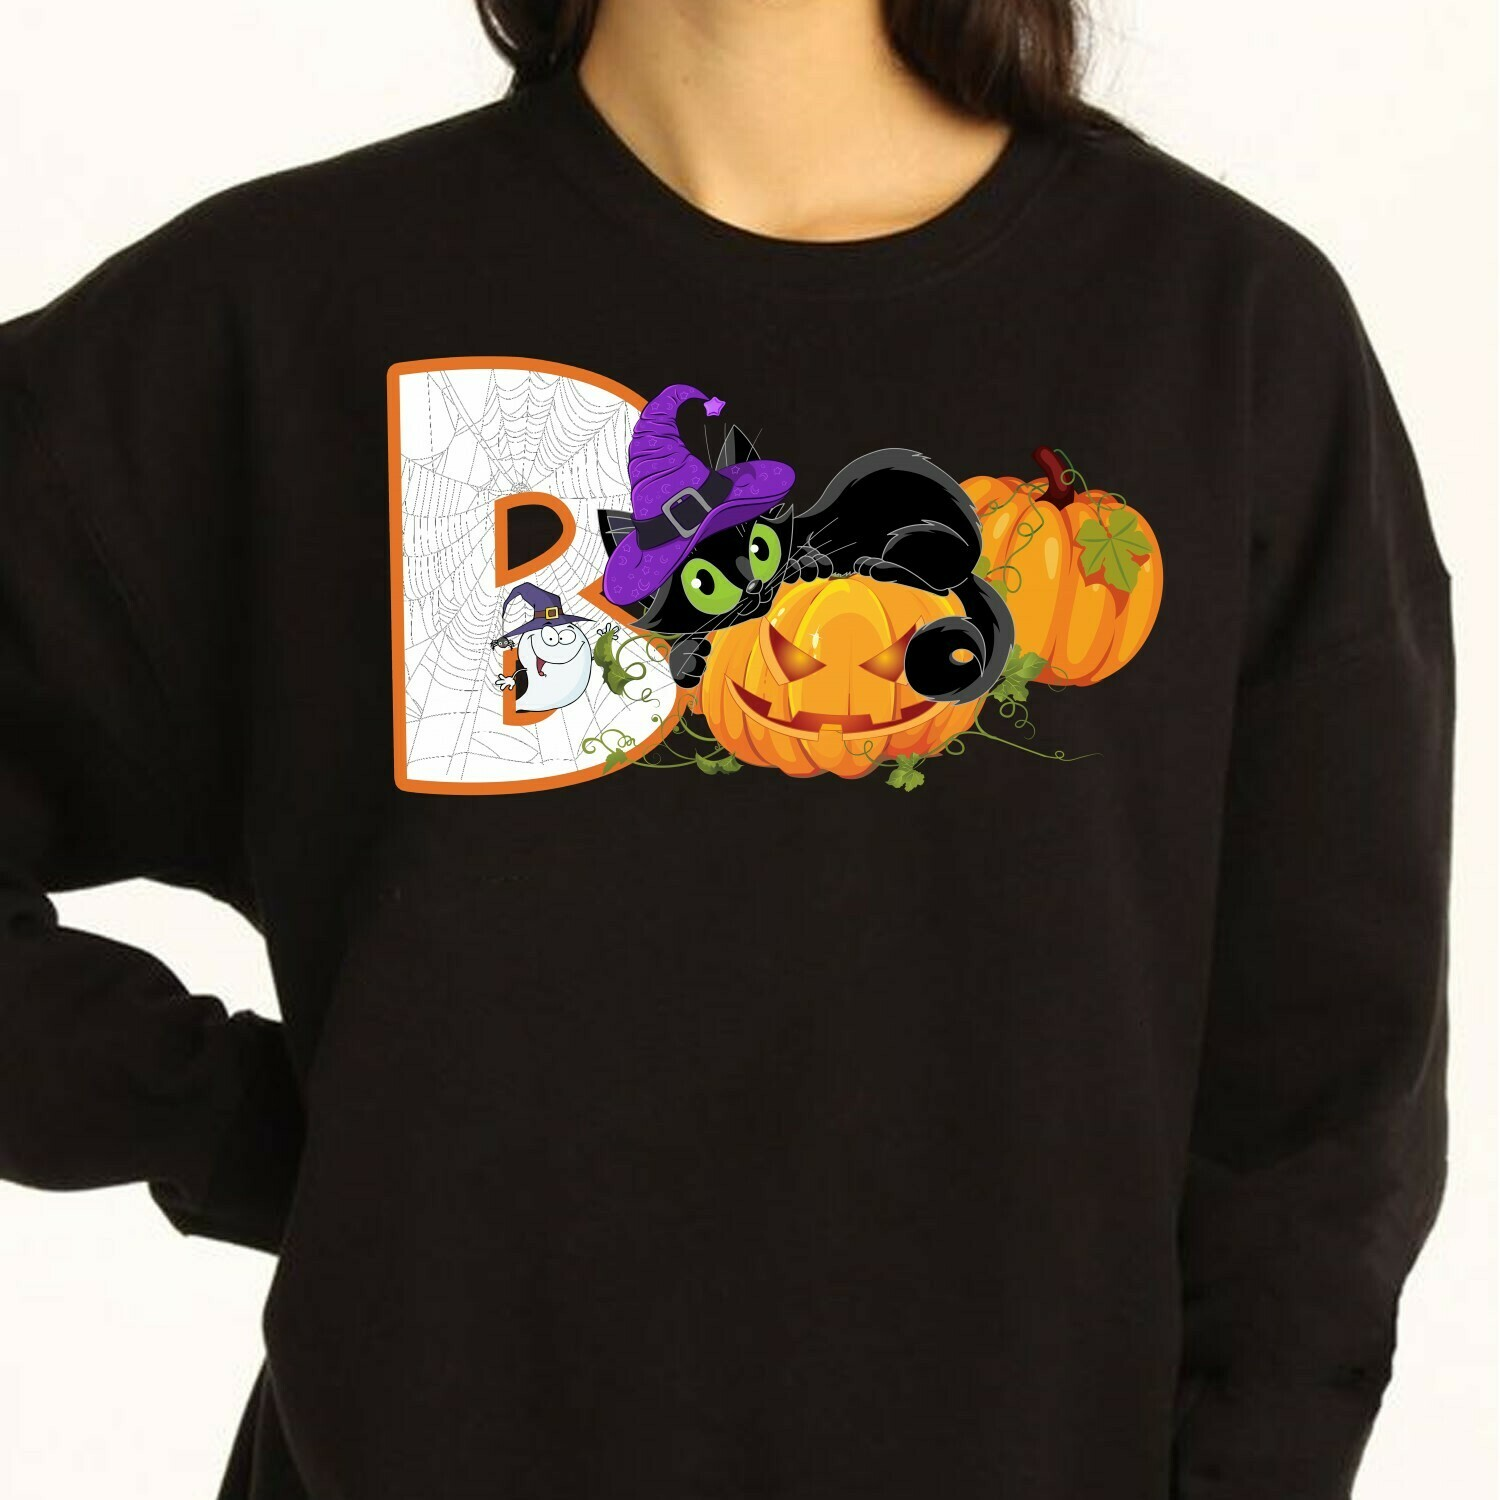 Boo Cat Witch Halloween Pumpkin Ghost Family Vacation Team Party Gifts T- Shirt Long Sleeve Sweatshirt Hoodie Jolly Family Gifts